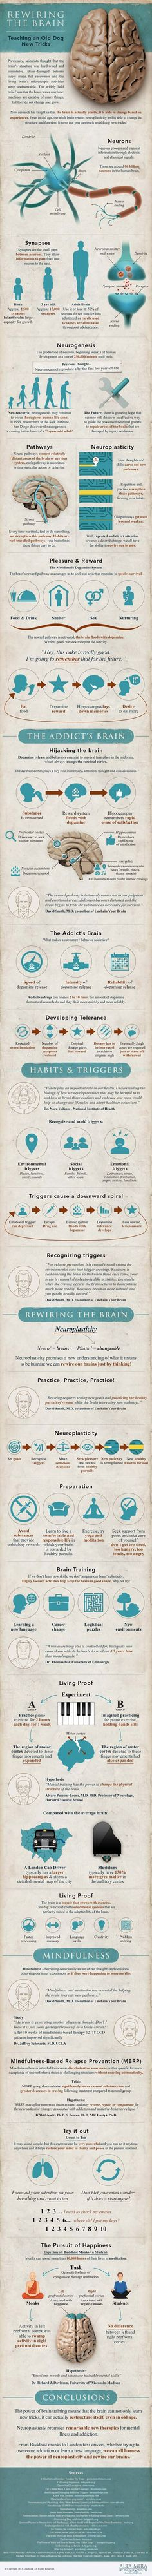 Rewiring The Brain - We do control how well we Understand! The Brain is Elastic, GROW IT!